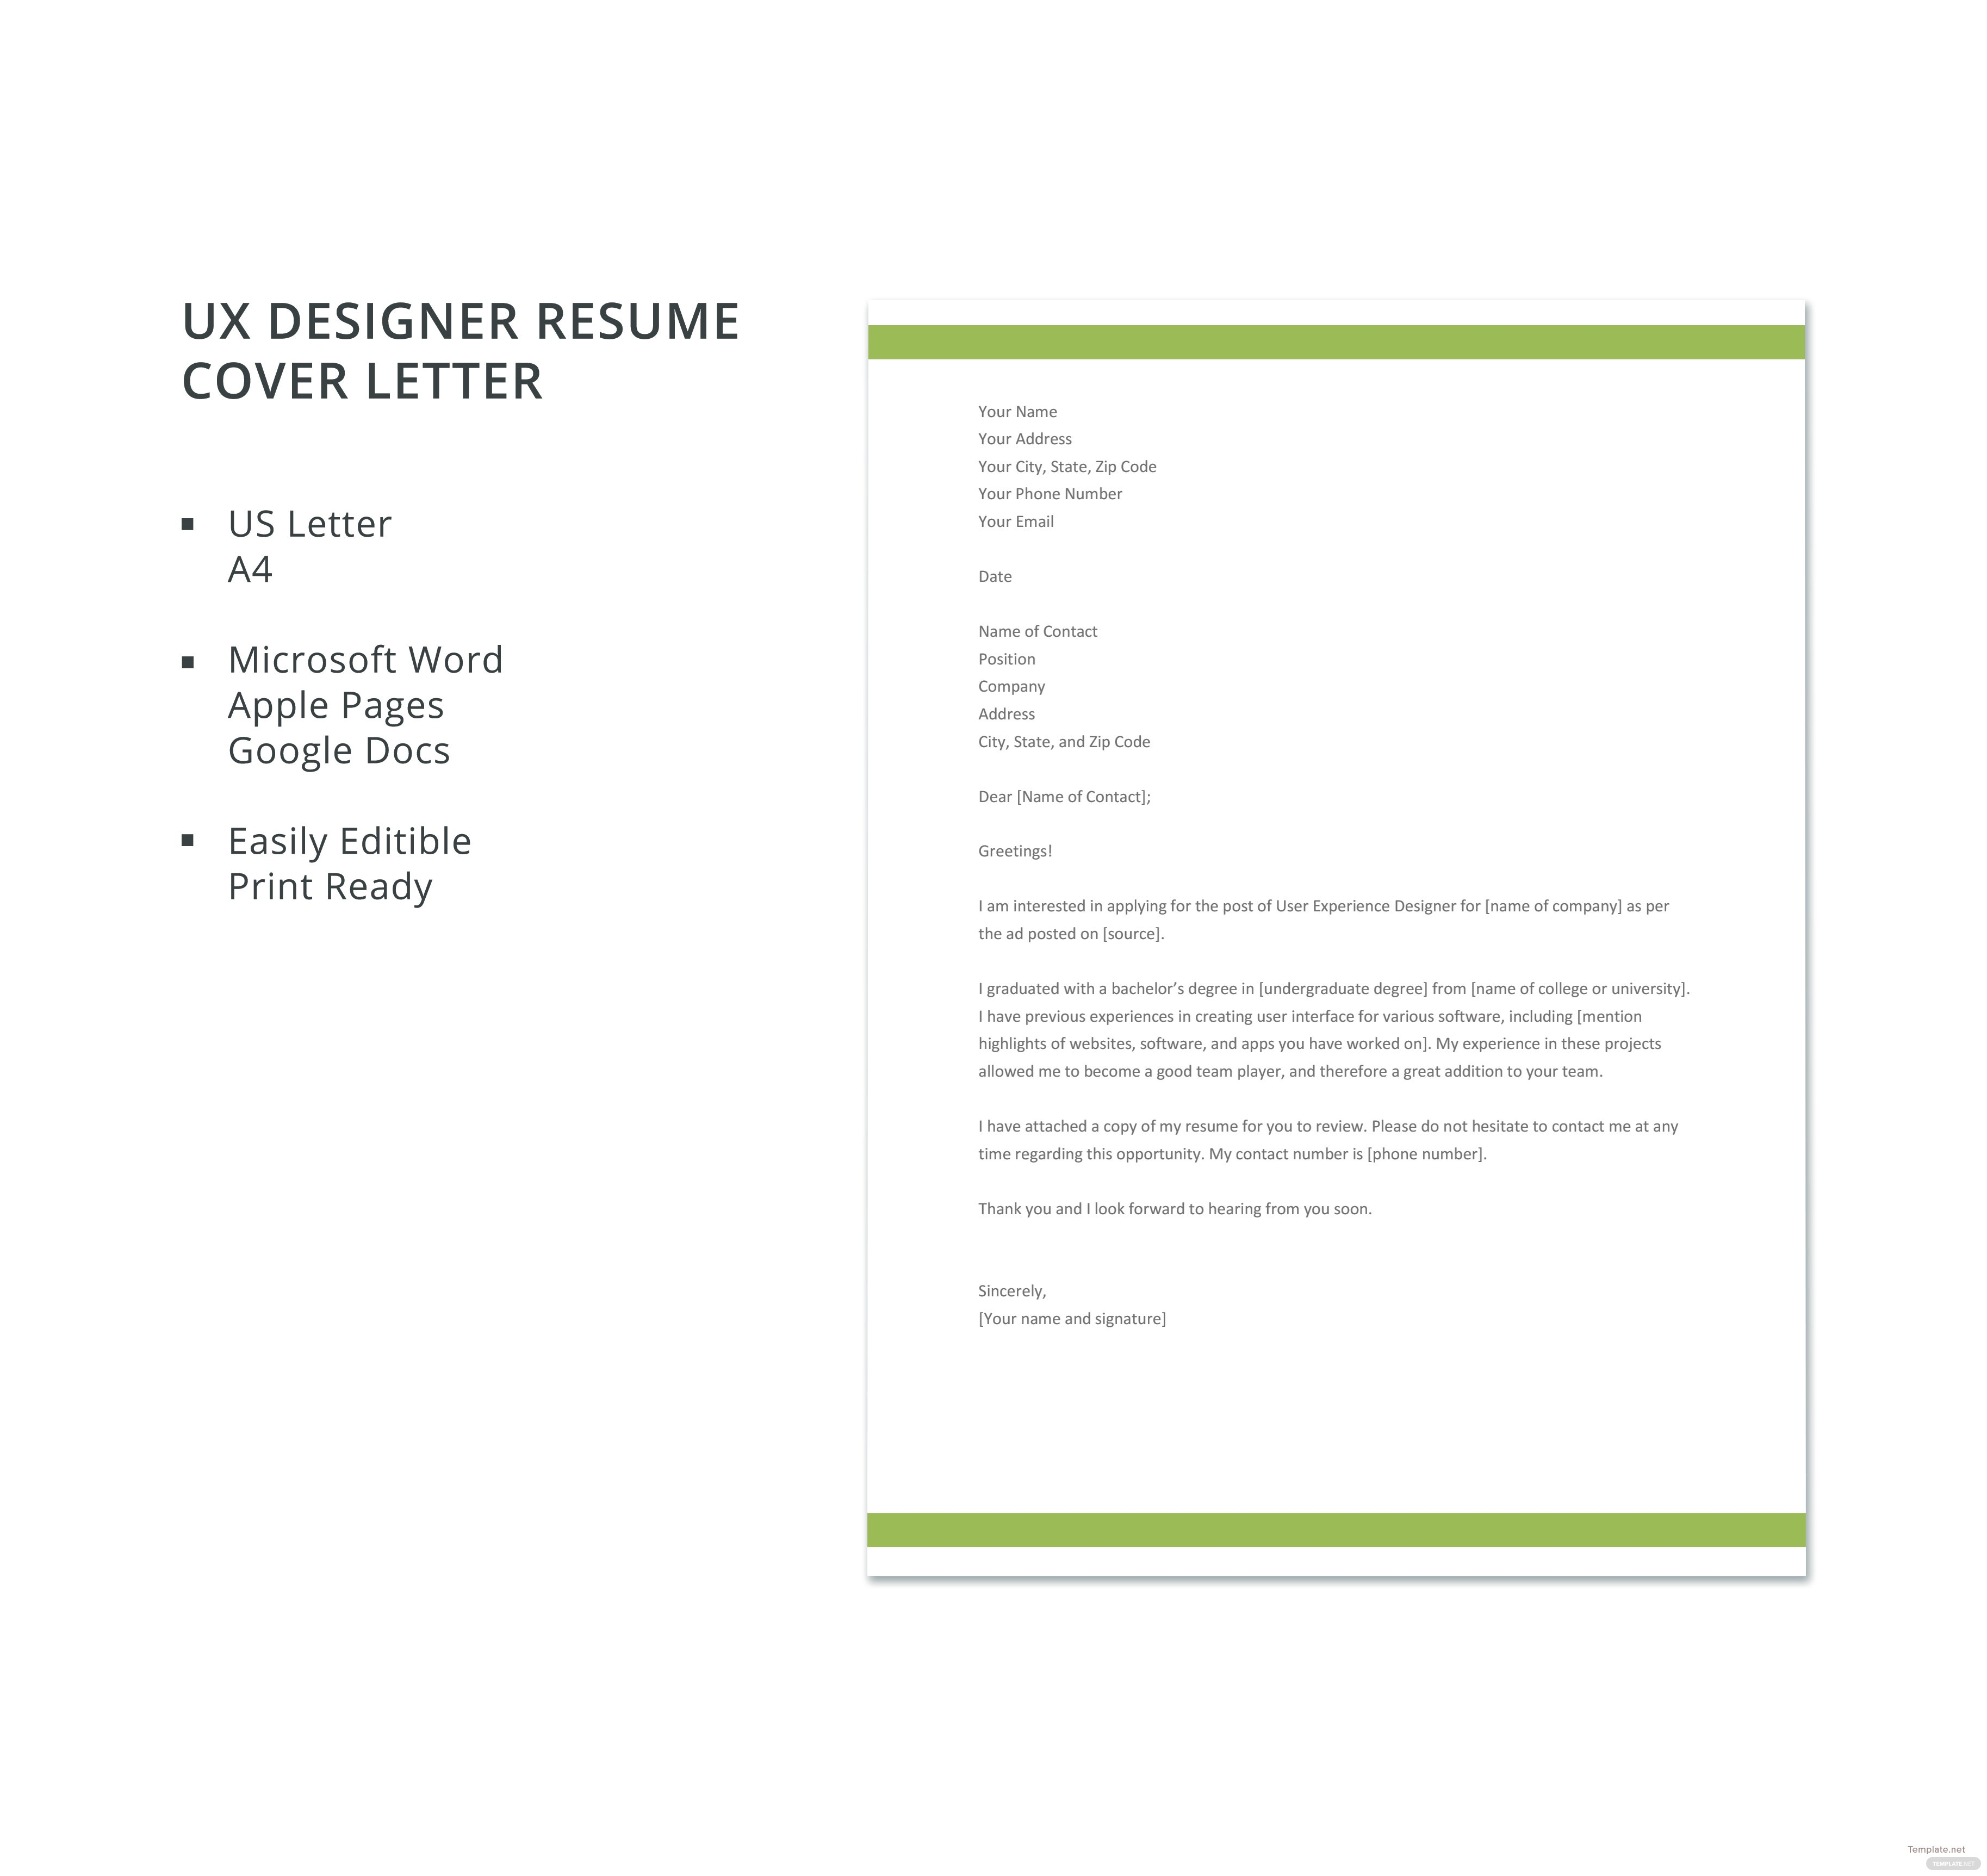 free ux designer resume cover letter template in microsoft